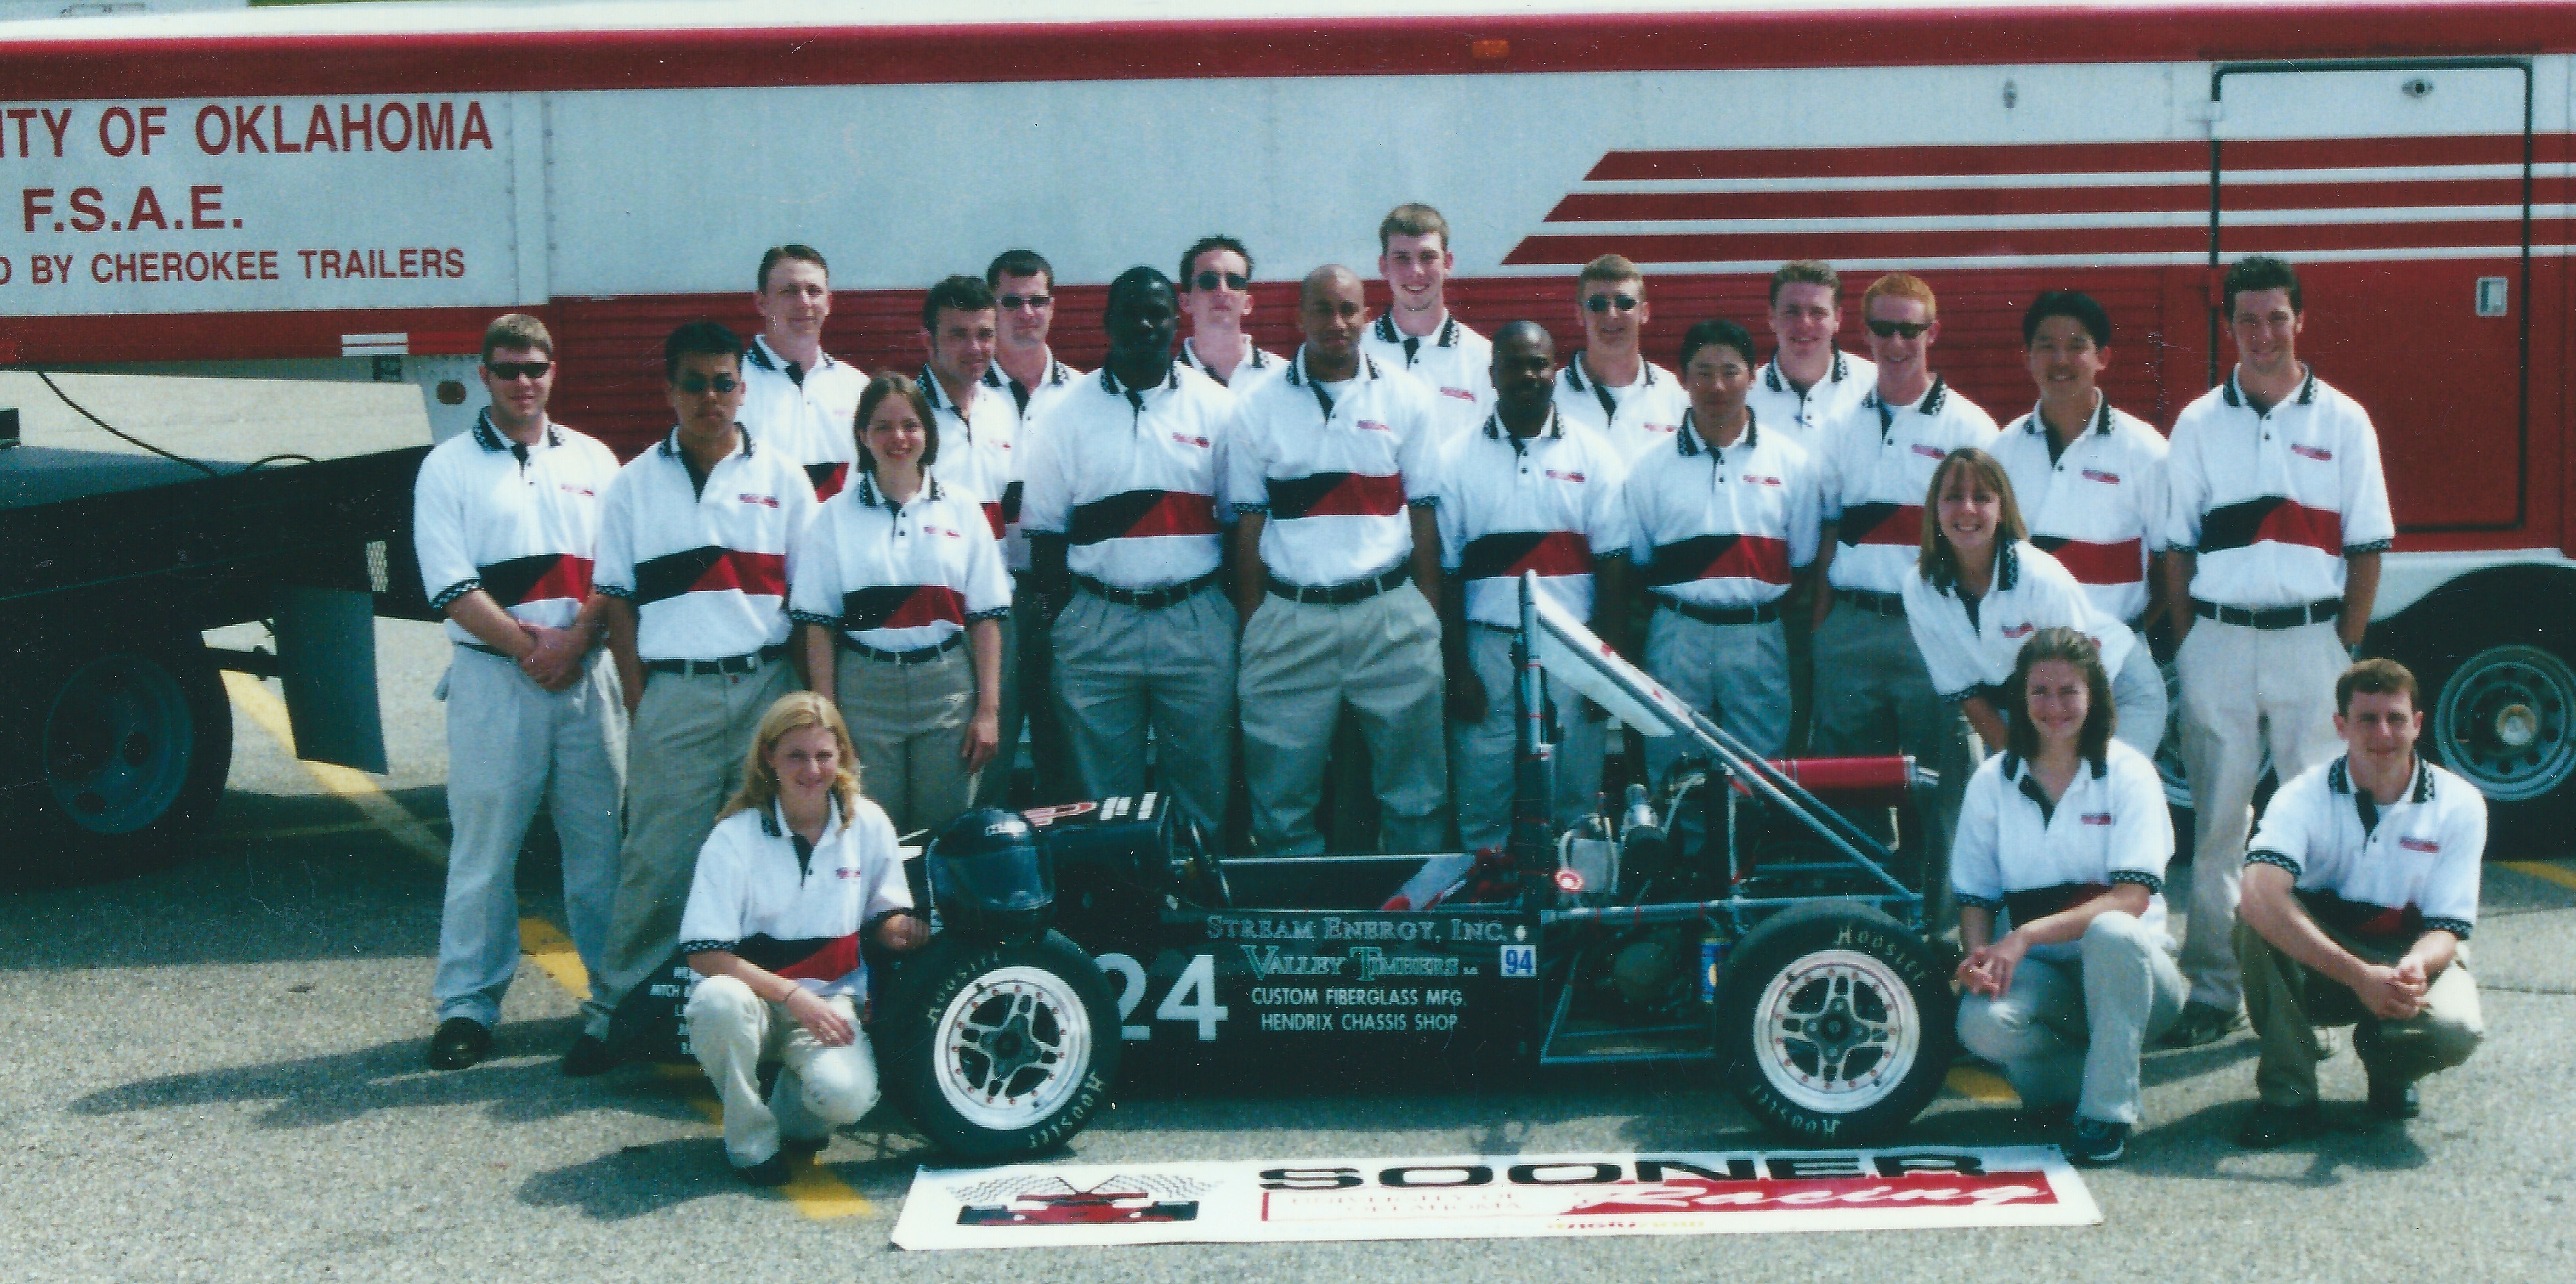 Sooner Racing Team in 2001